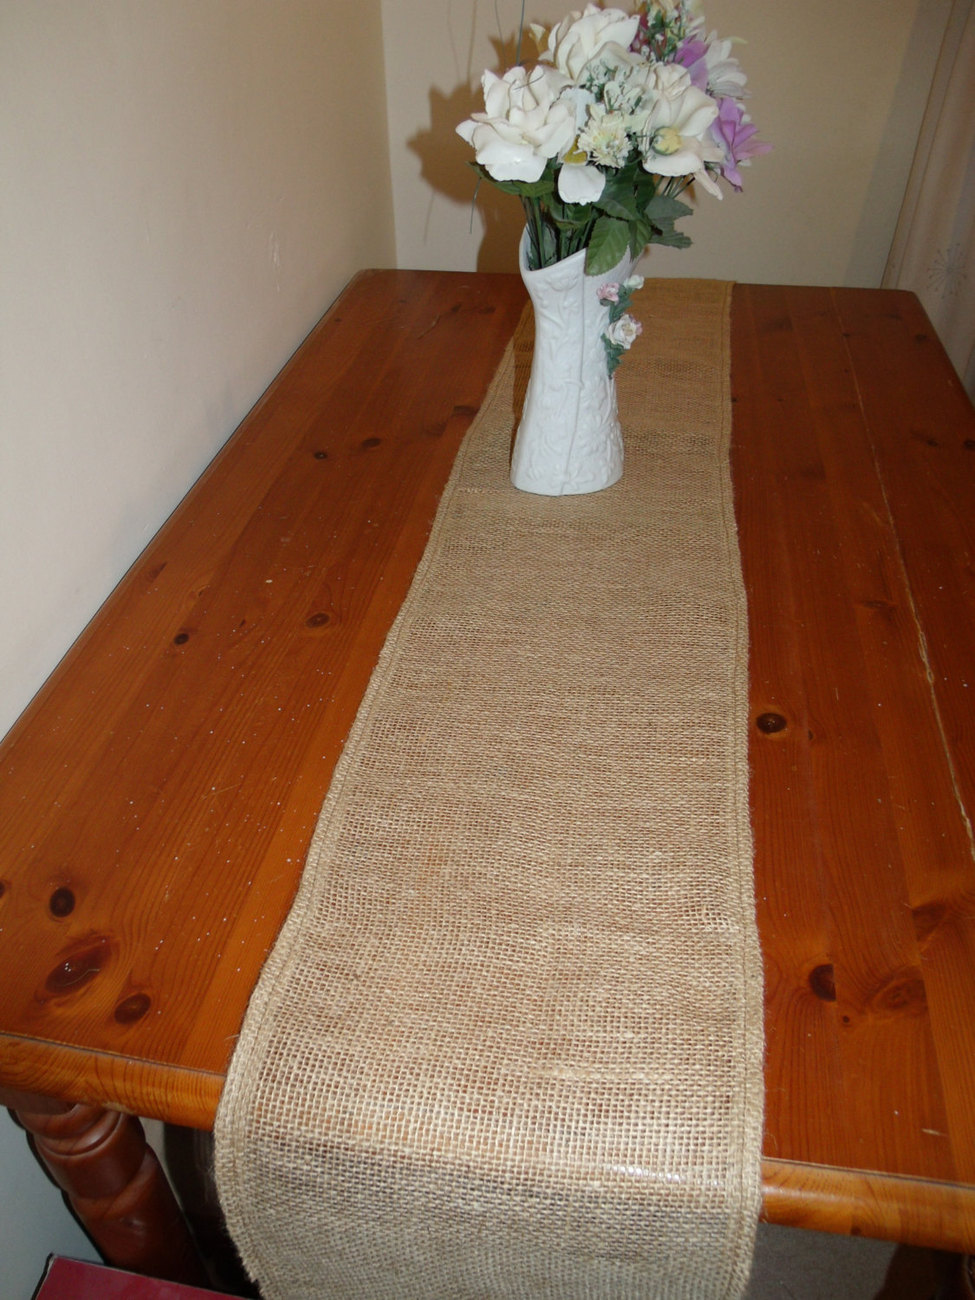 Rustic burlap wedding table runner free shipping 12 72 for Table runners 52 inches